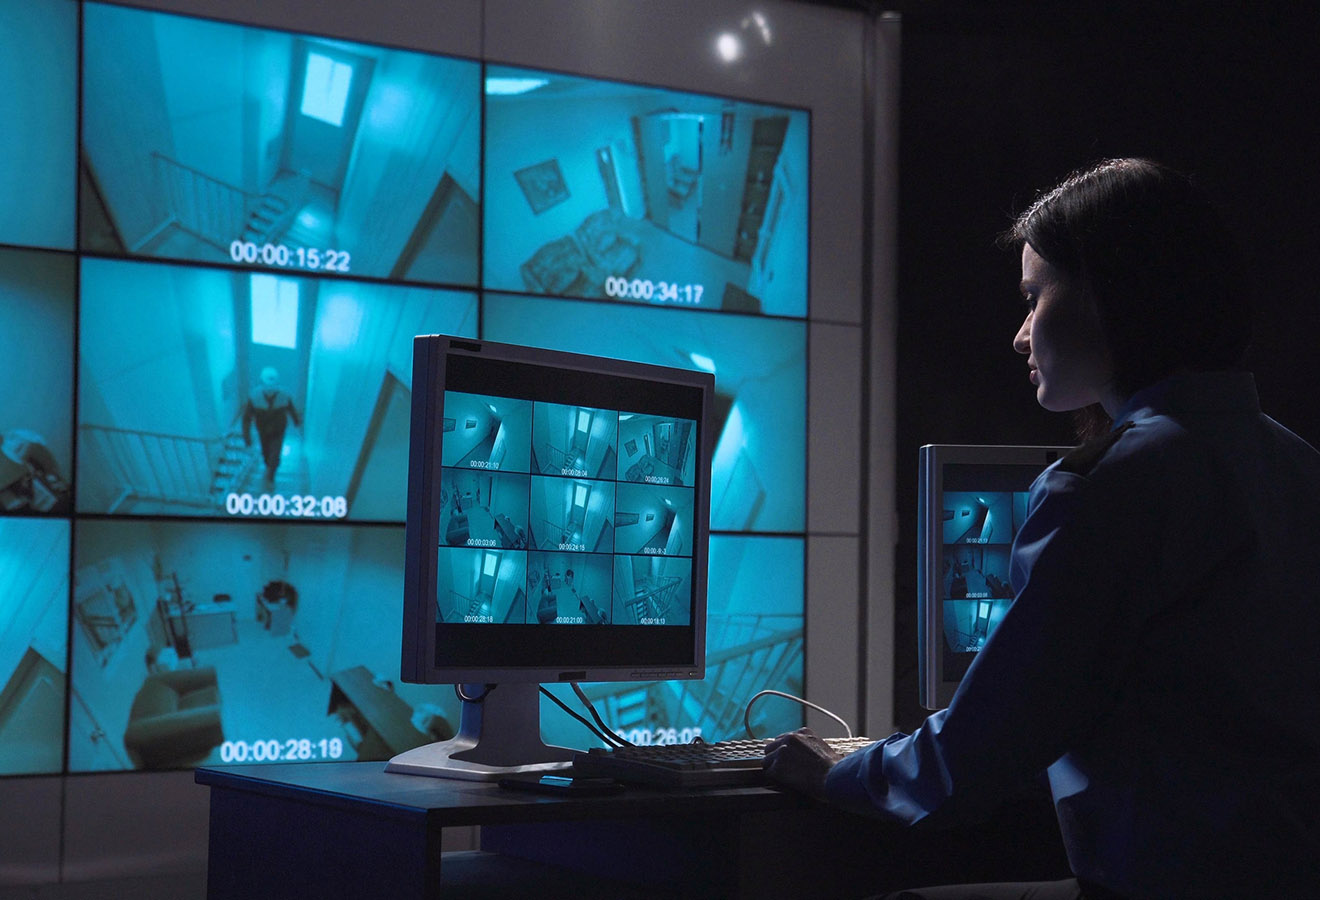 Single female security person monitoring closed circuit surveillance from multiple cameras in various rooms of a building informs on the radio to check the person who moves inside the room.